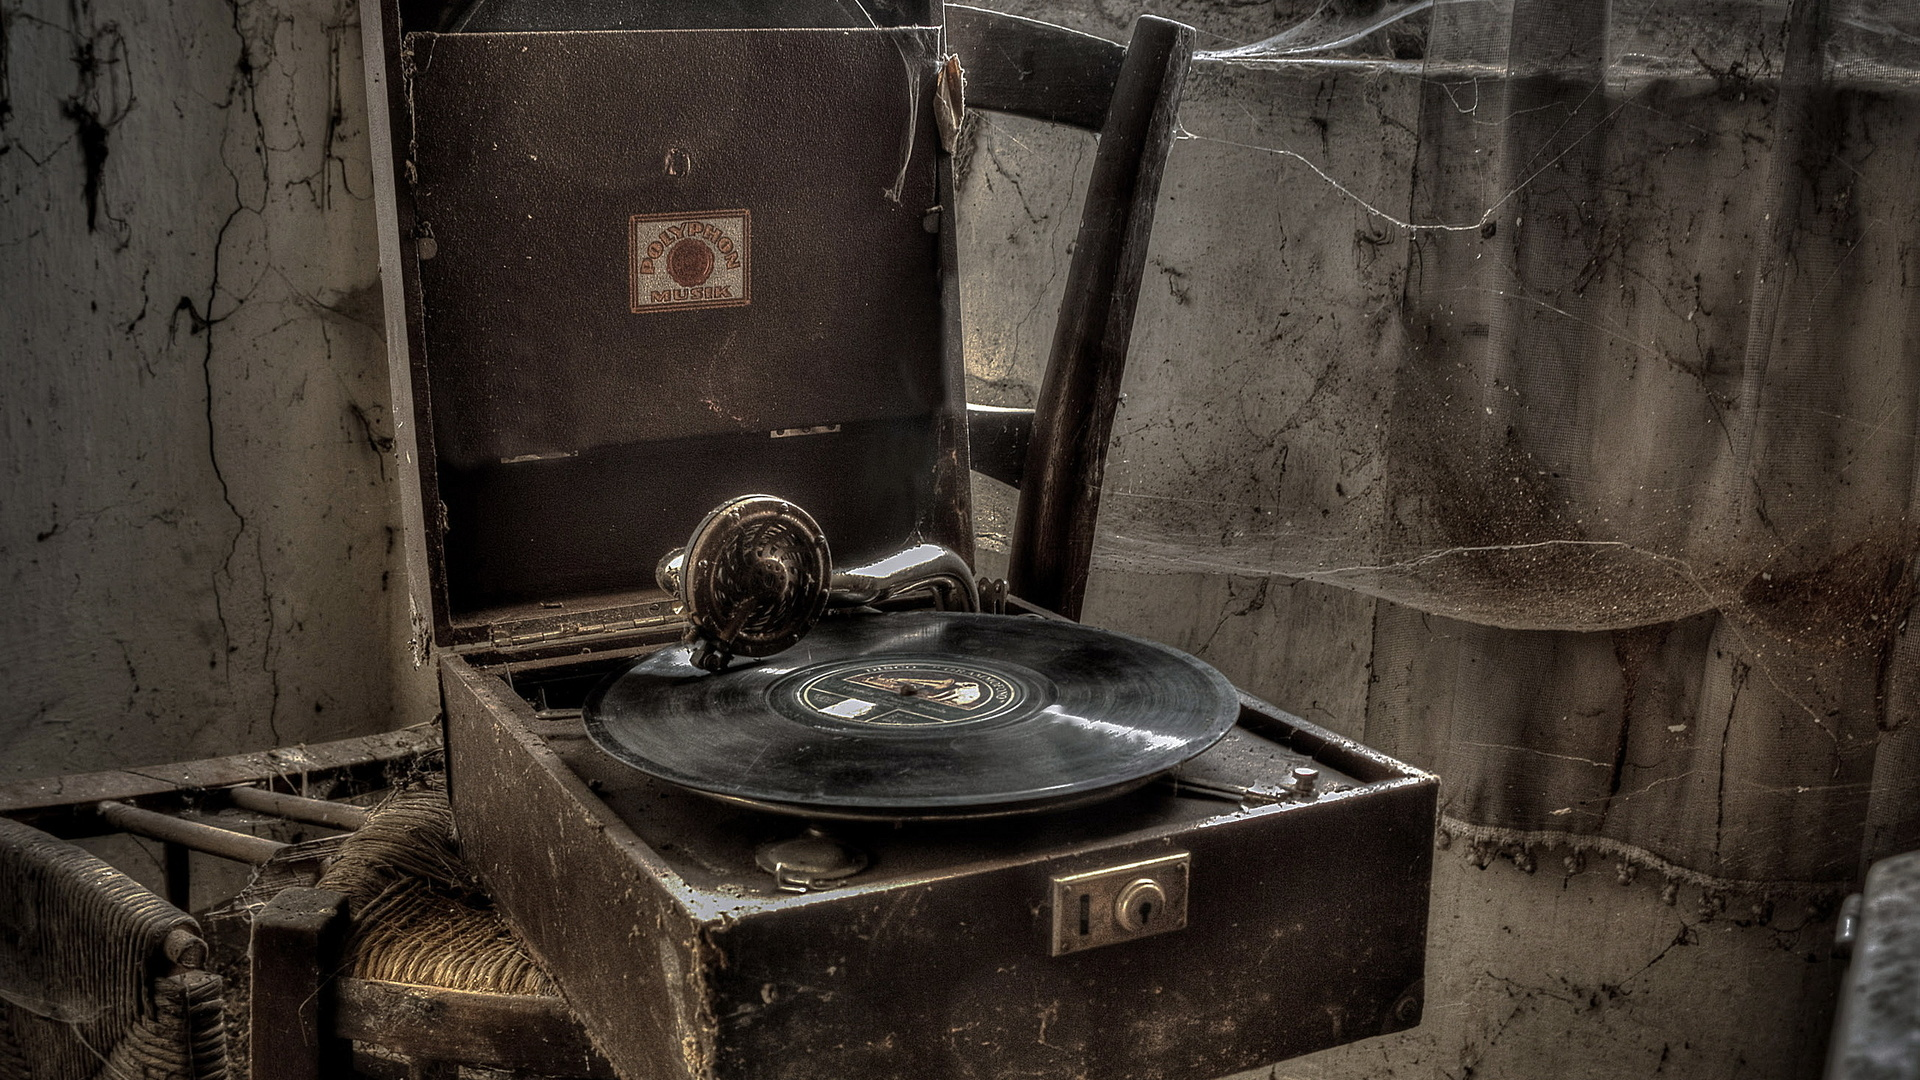 Download wallpaper old gramophone 1920x1080 the wallpapers photos - Walpepar photos ...